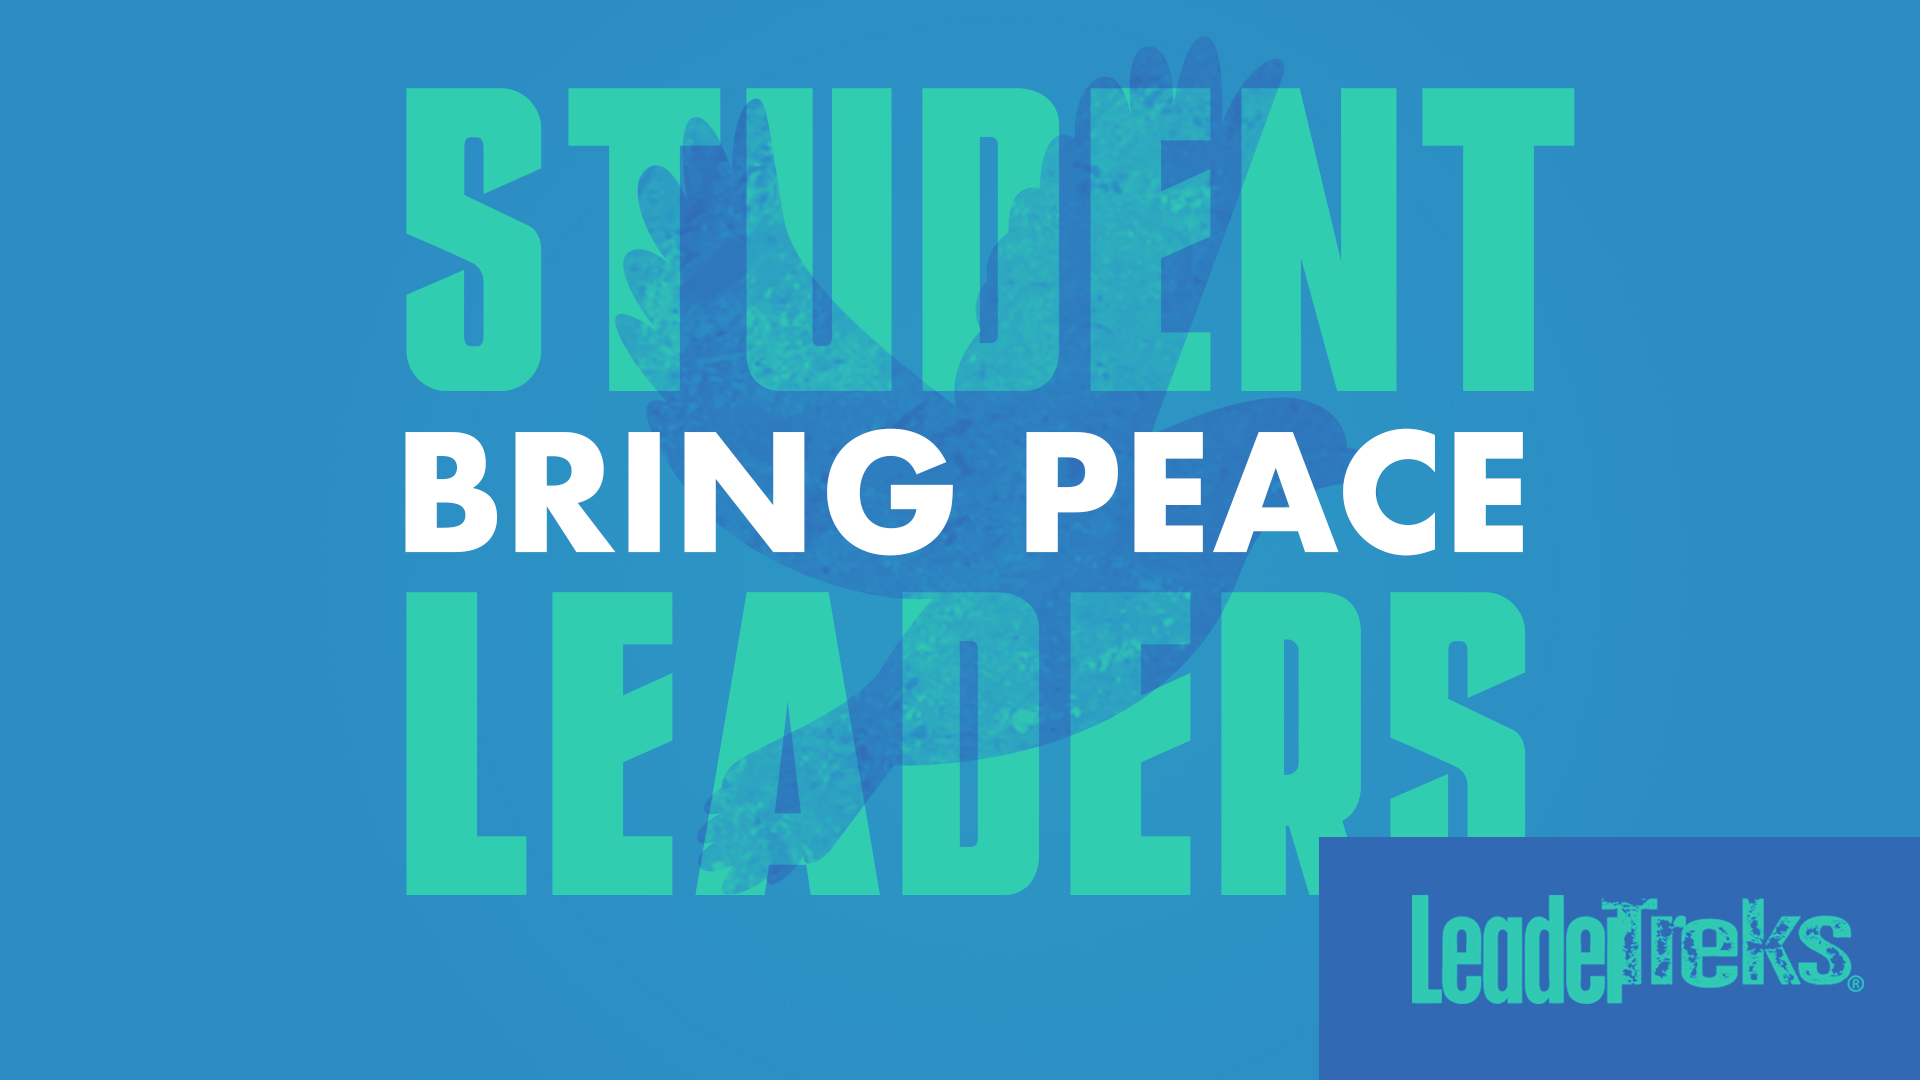 Student Leaders Bring Peace